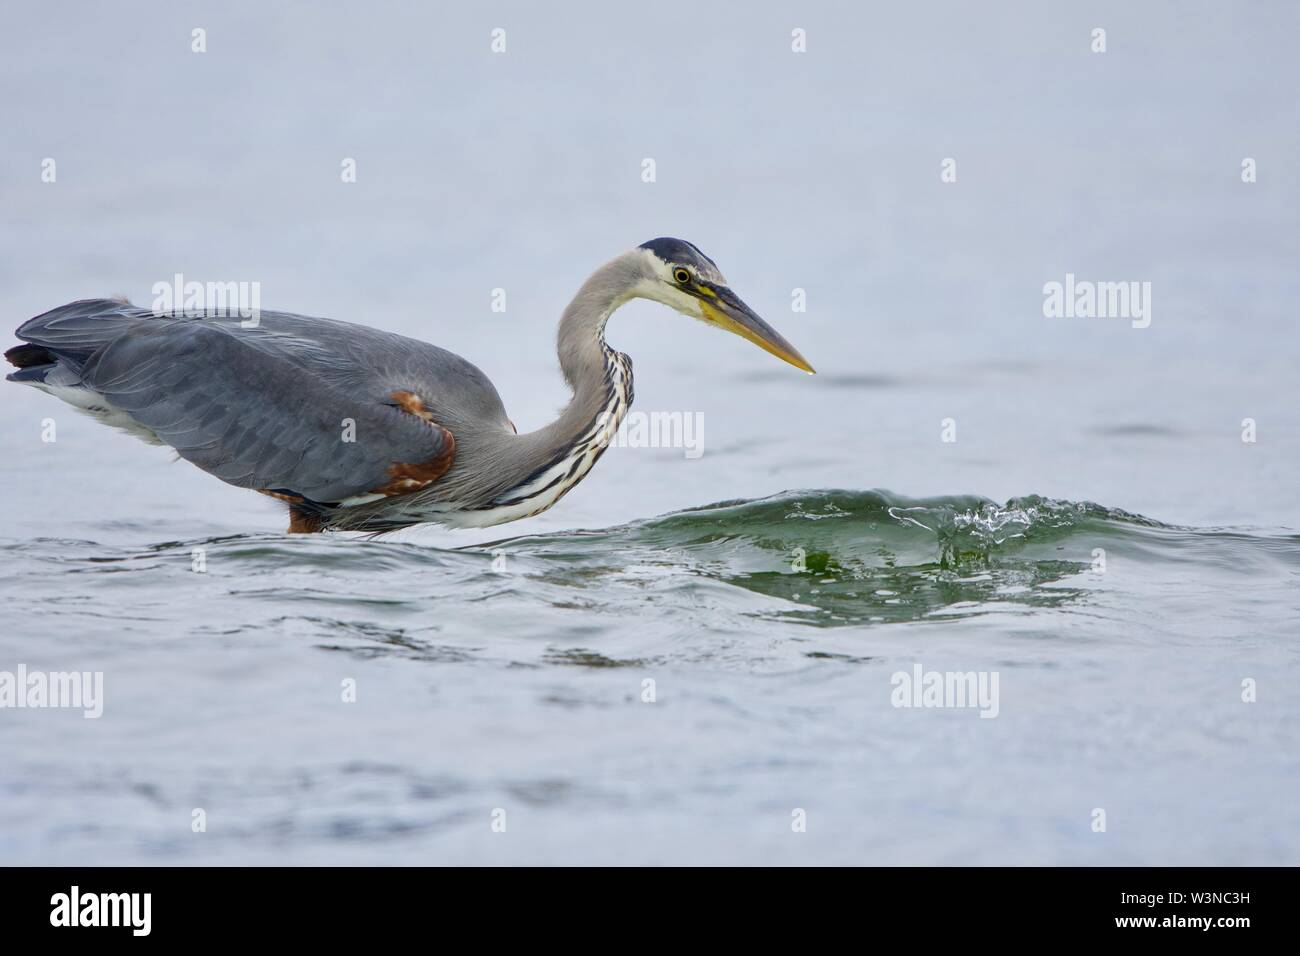 Small wave breaks as it passes a great blue heron fishing near shore, Witty's Lagoon, Vancouver Island, British Columbia. - Stock Image